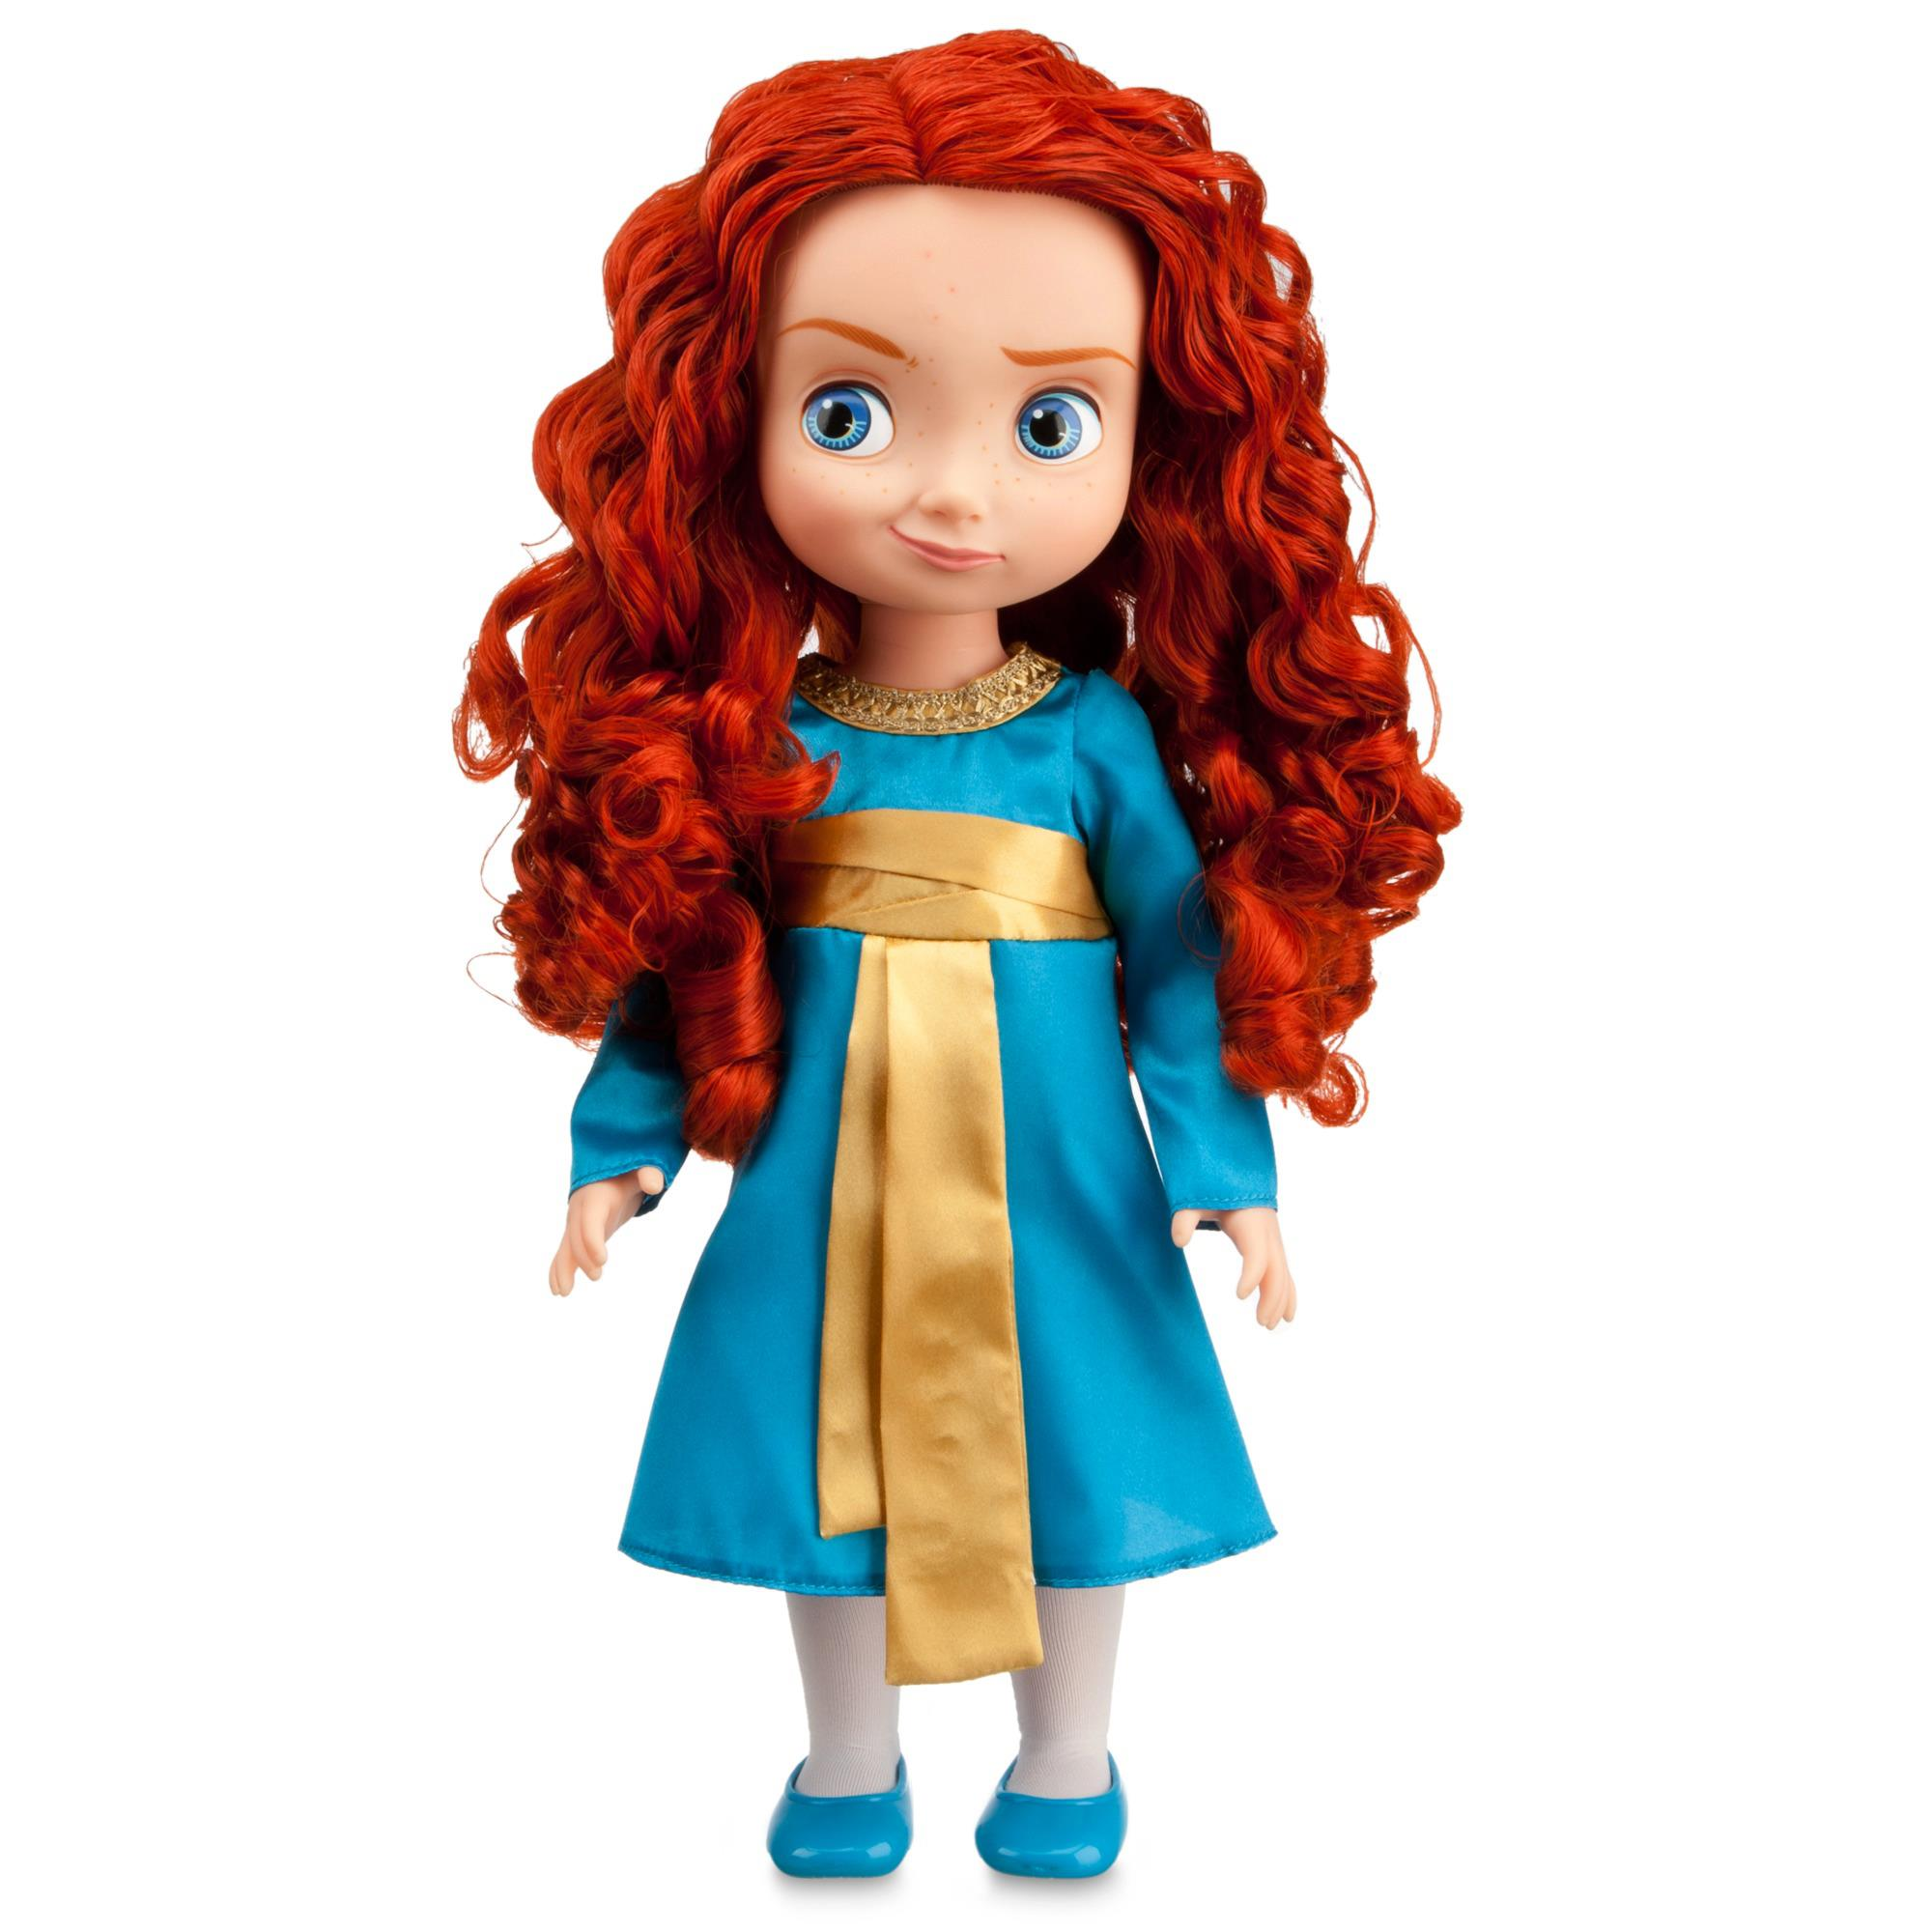 'Brave' Merchandise Begins To Arrive At Disney Stores